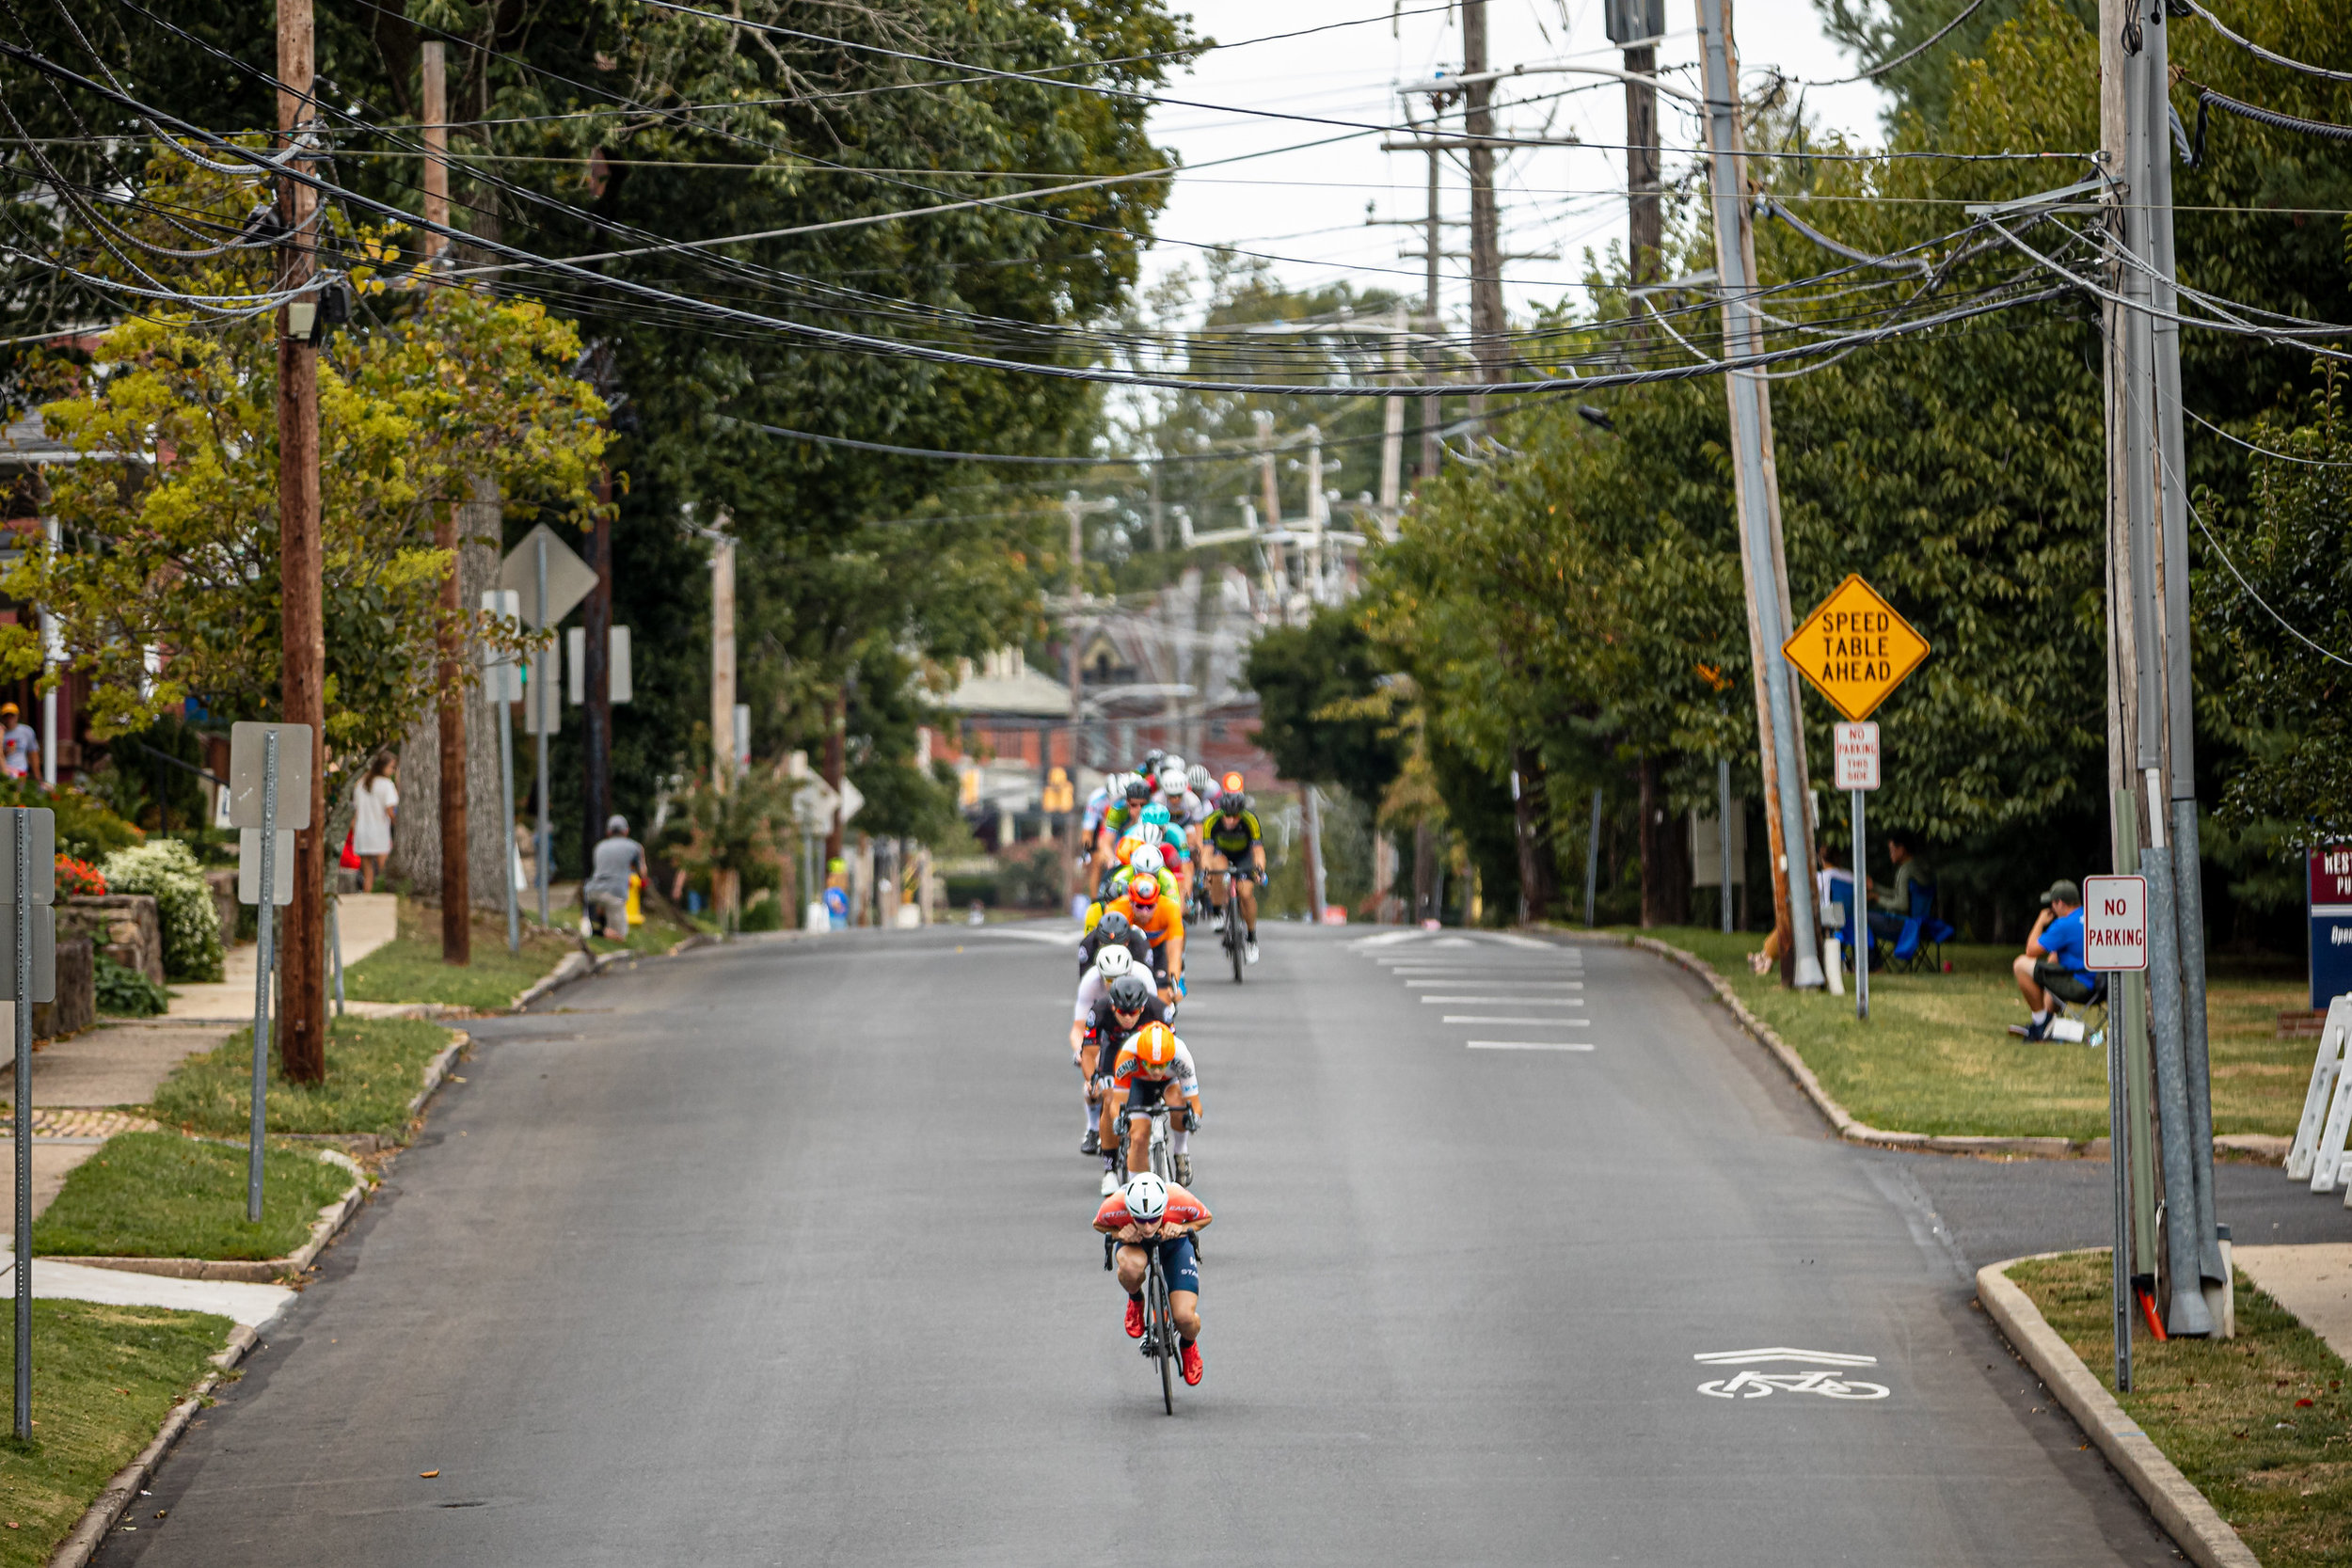 With eighteen laps remaining, the breakaway snapped from the peloton and stayed away, captured here by Mike Maney's photo at the end of Ashland Street. Photo courtesy   Mike Maney  .